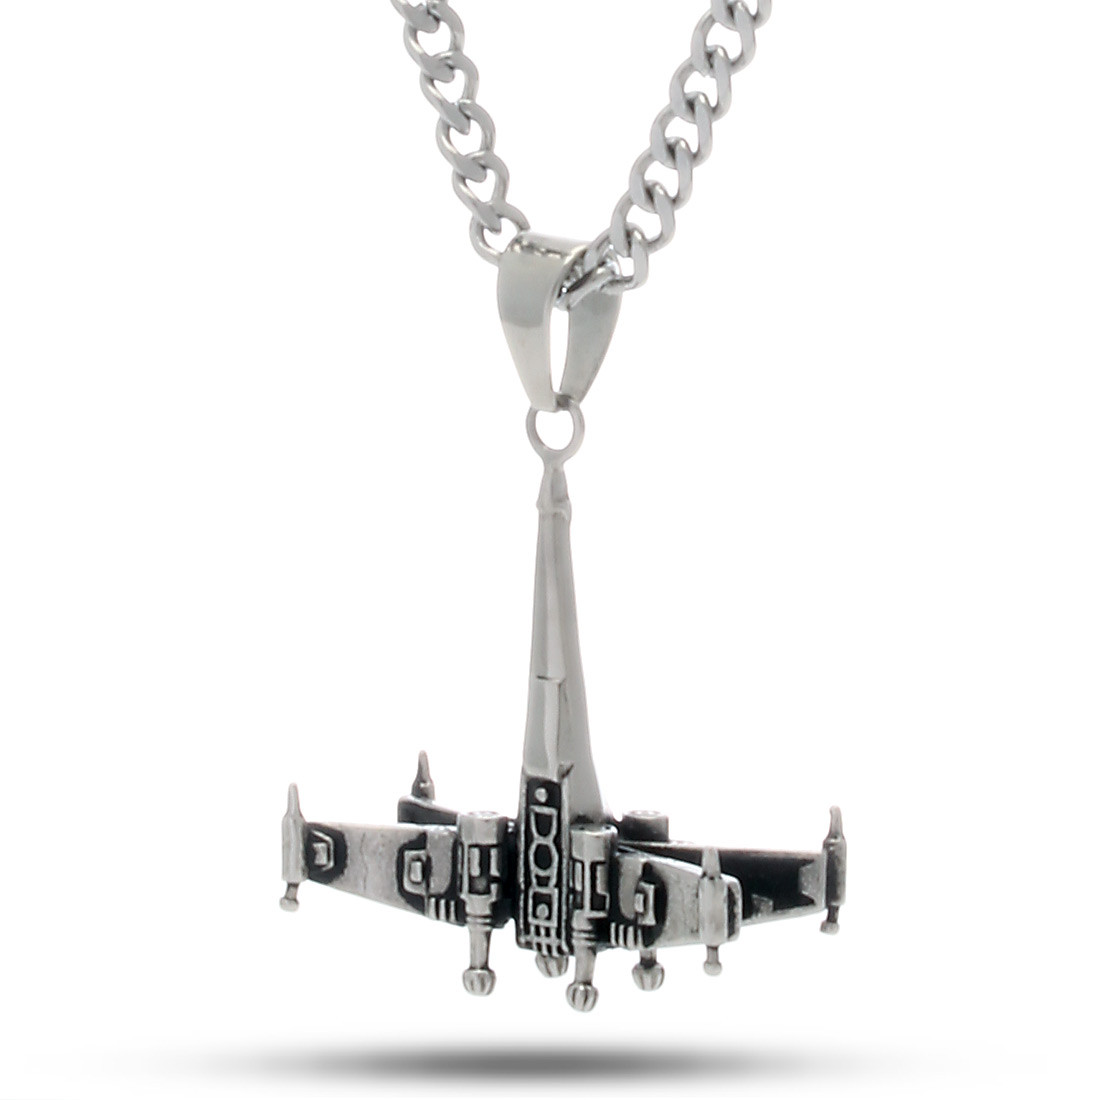 Nkx11345 stainless steel x wing necklace